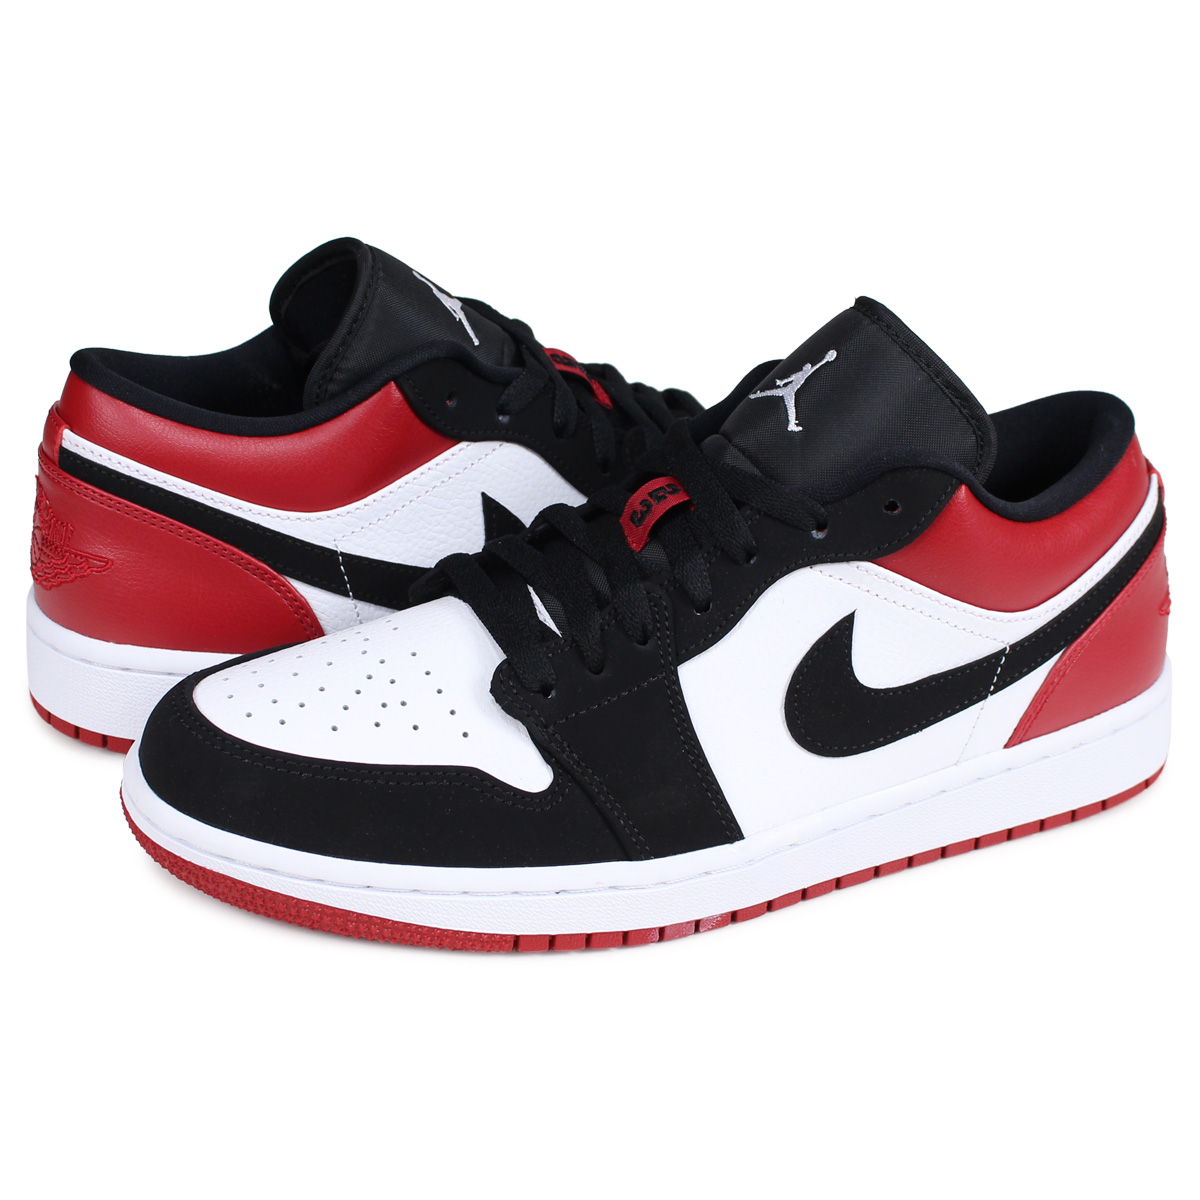 to buy new lifestyle differently Nike NIKE Air Jordan 1 nostalgic sneakers men AIR JORDAN 1 LOW BLACK TOE つま  black white white 553,558-116 [the 11/20 additional arrival]